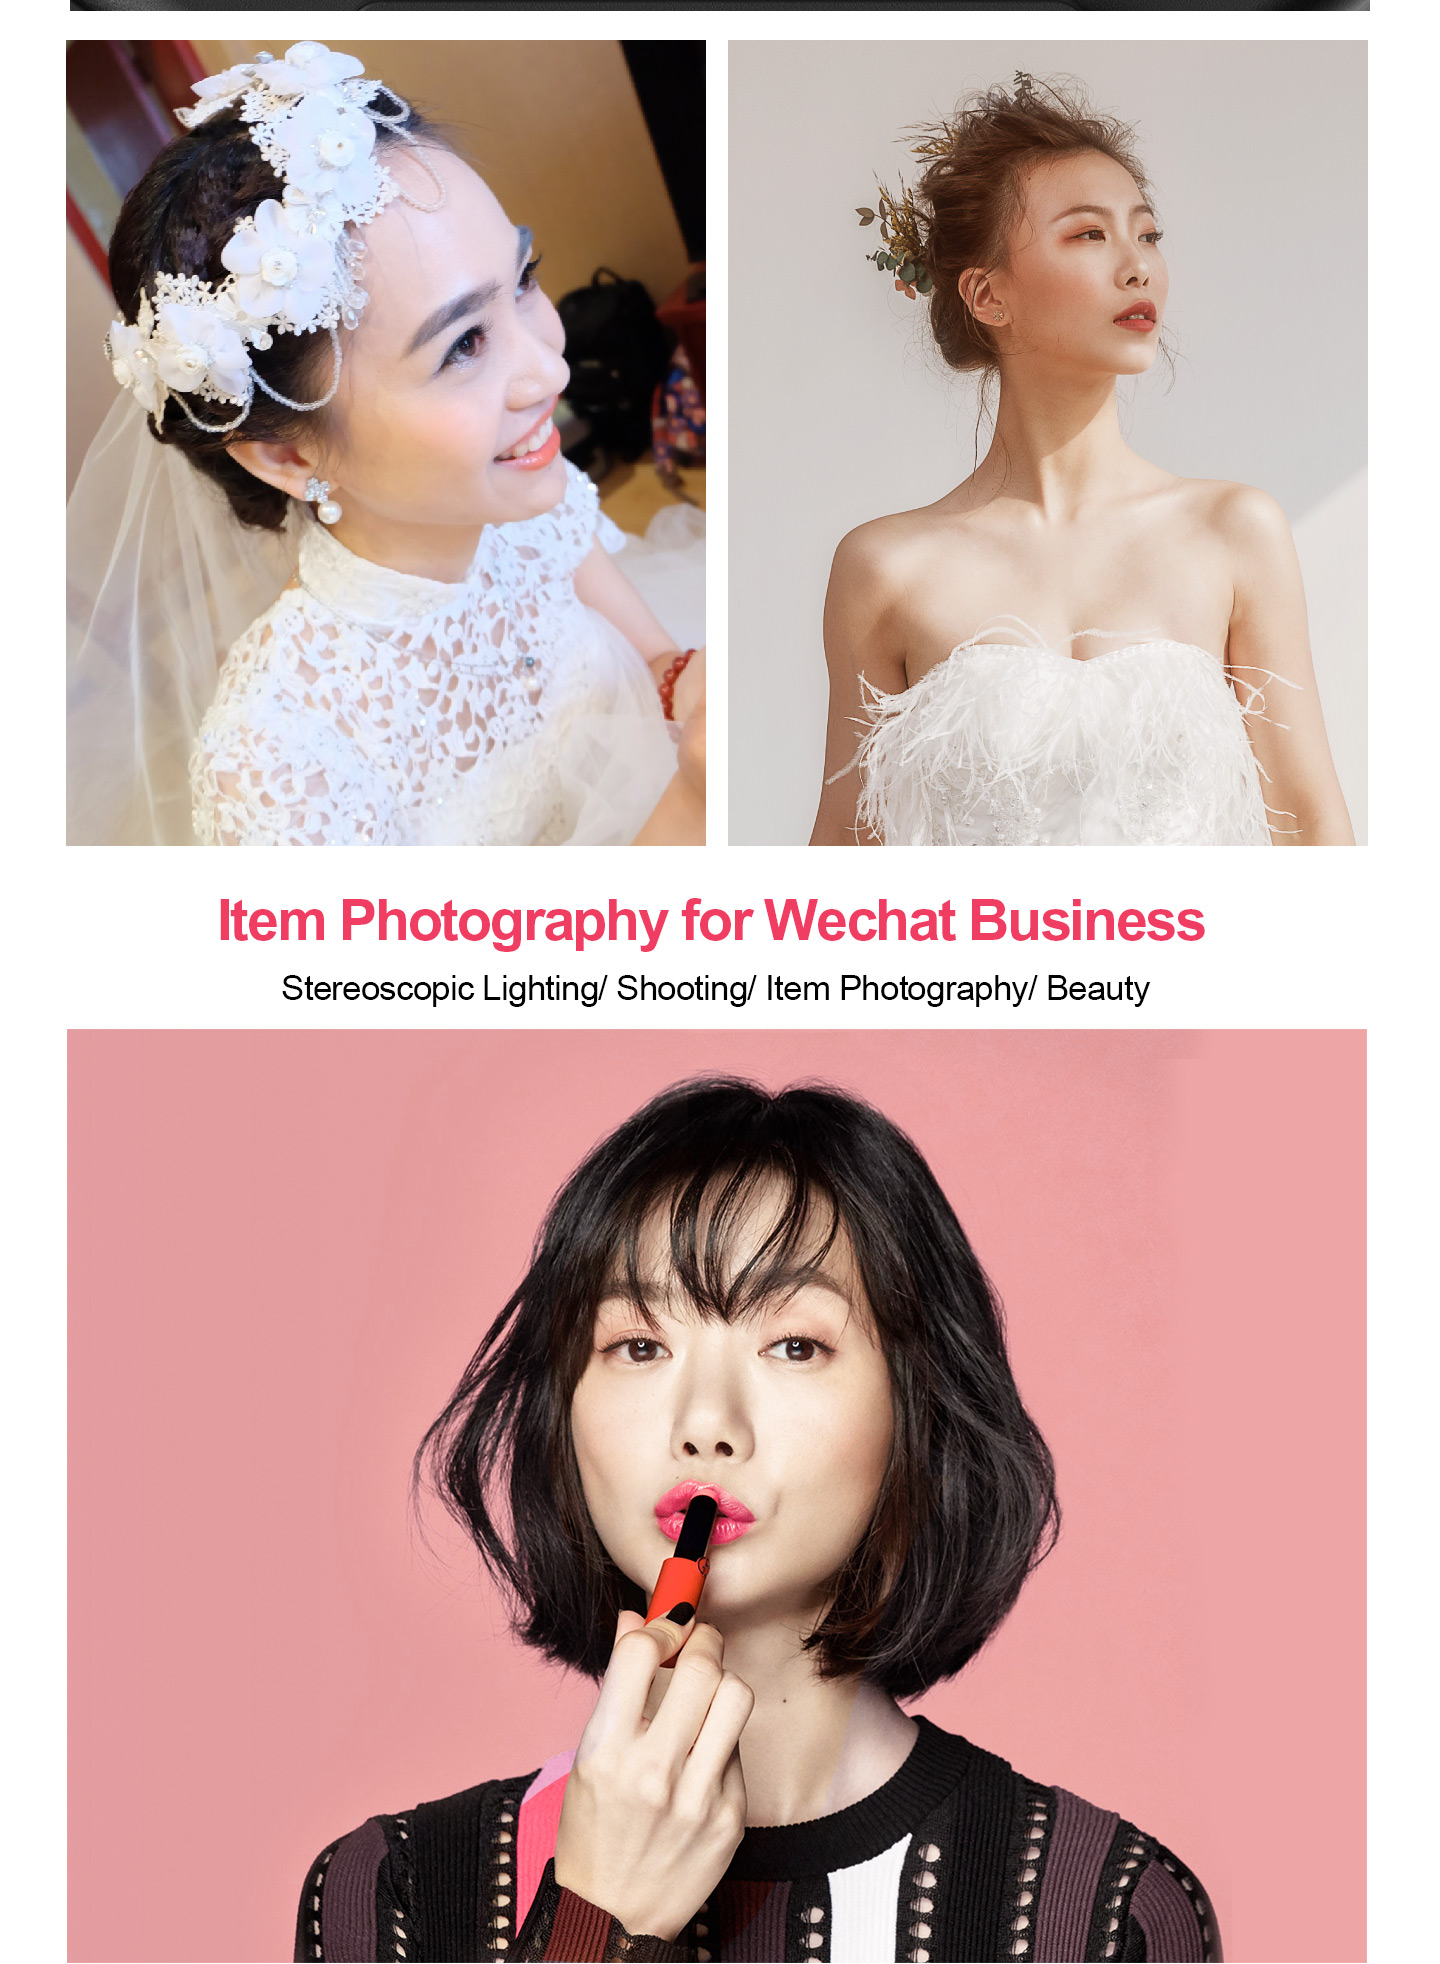 ltem Photography for Wechat Business